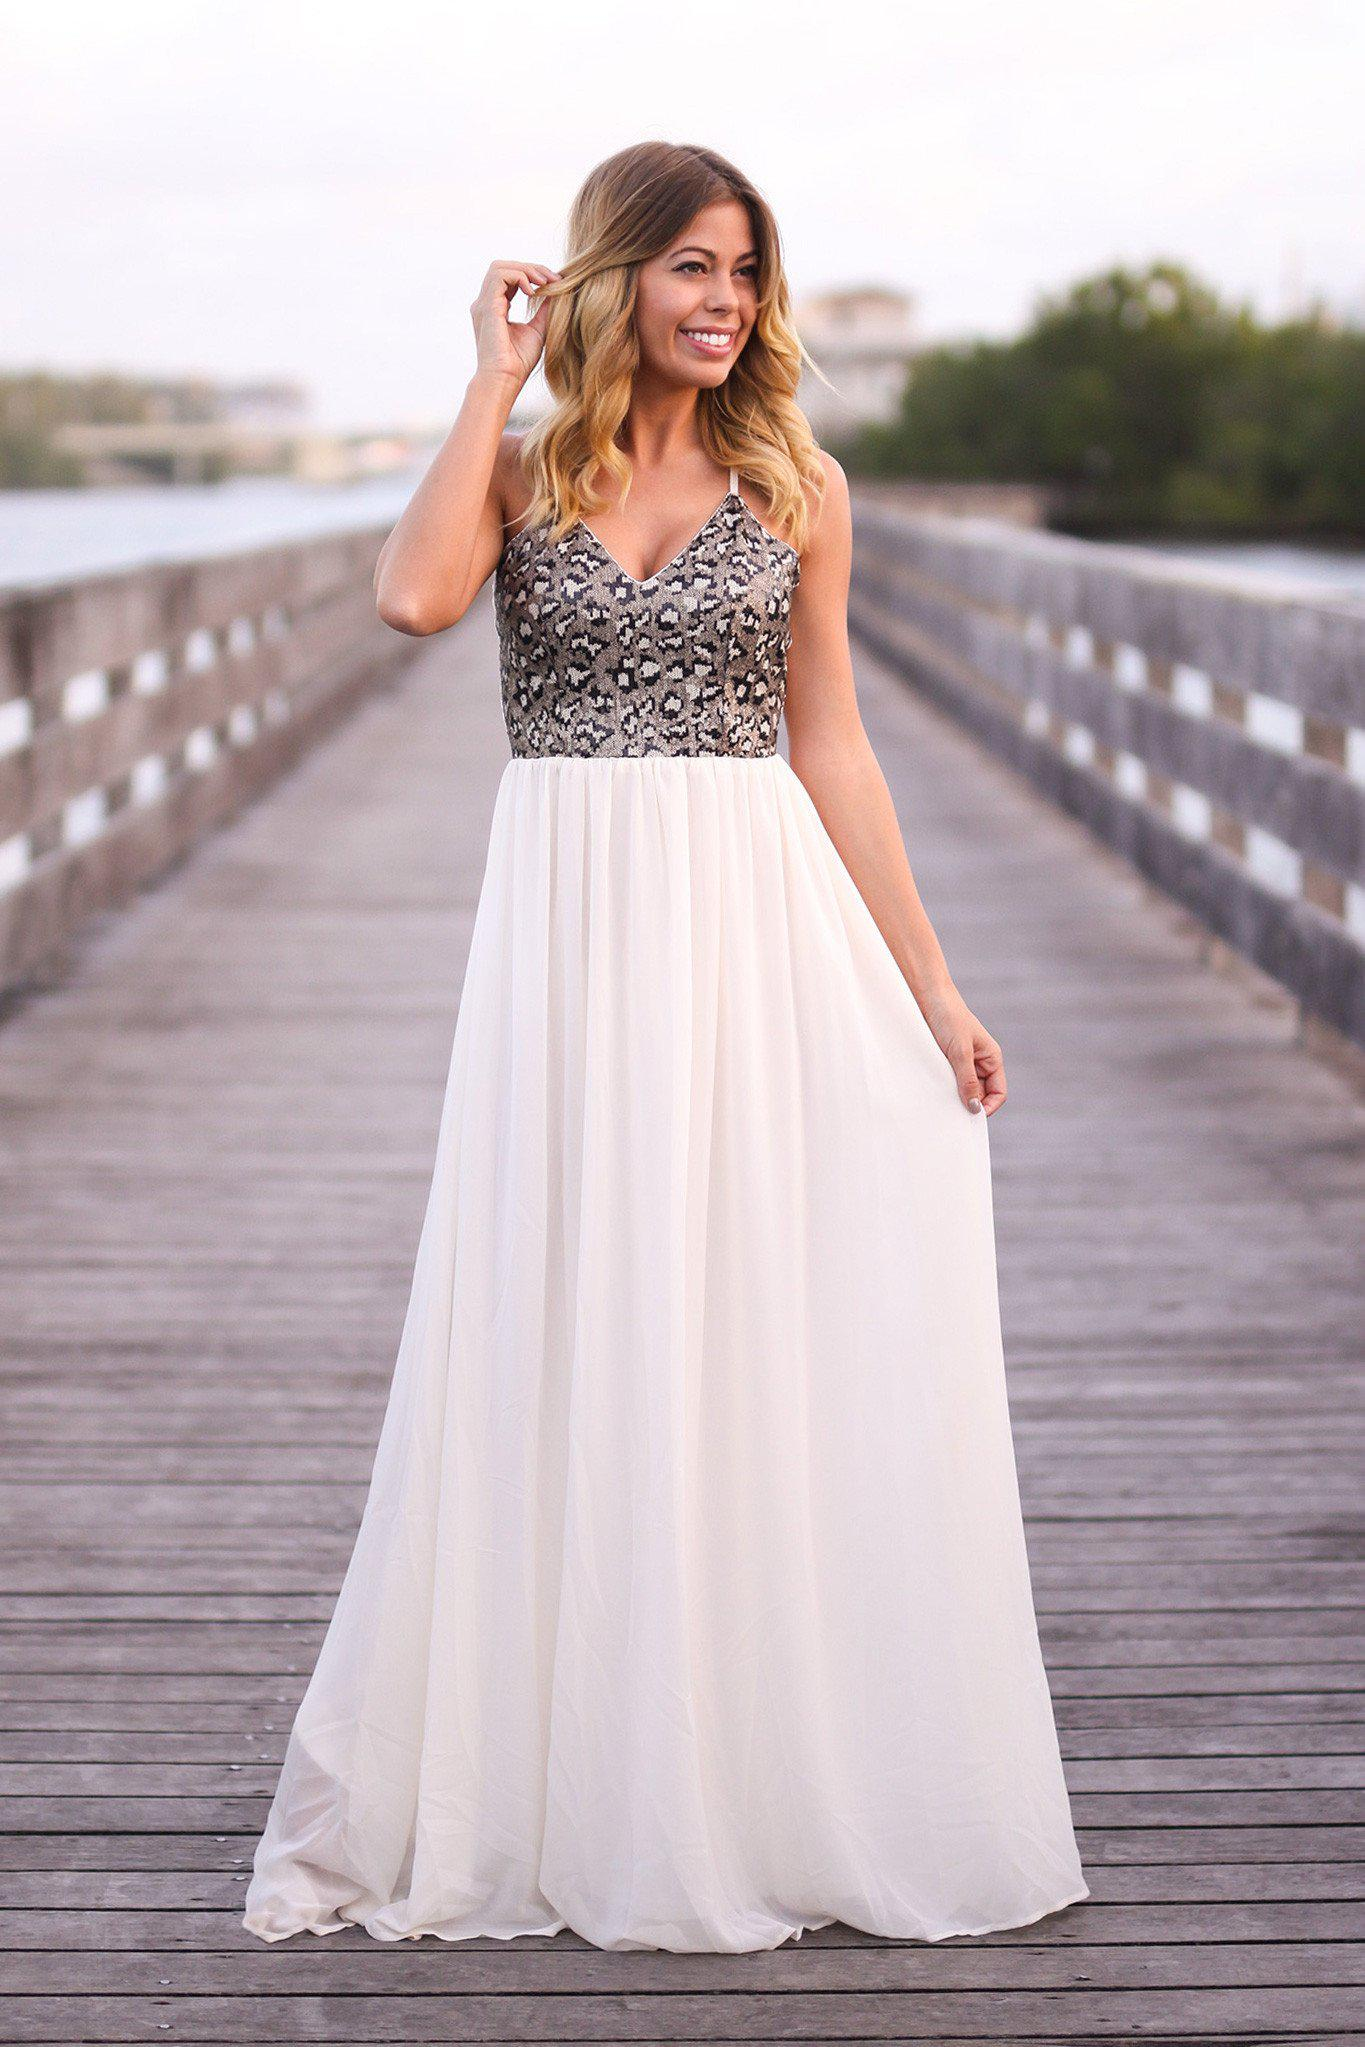 Cream and Black Sequined Maxi Dress